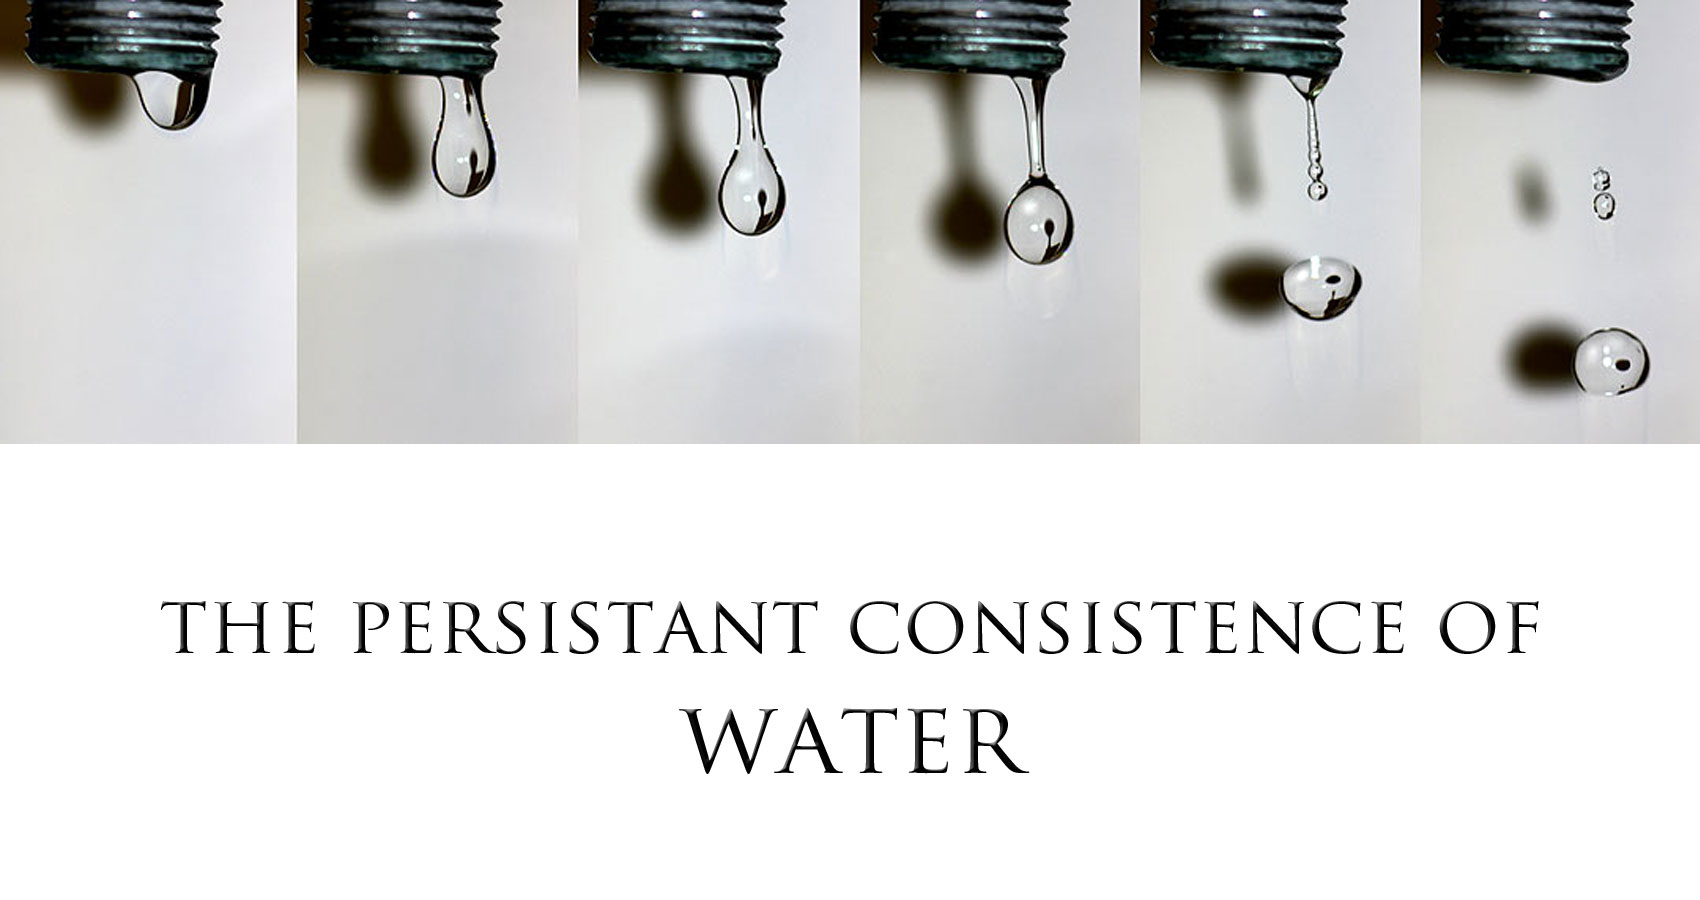 The Persistent Consistence of Water by Amanda Eifert at Spillwords.com